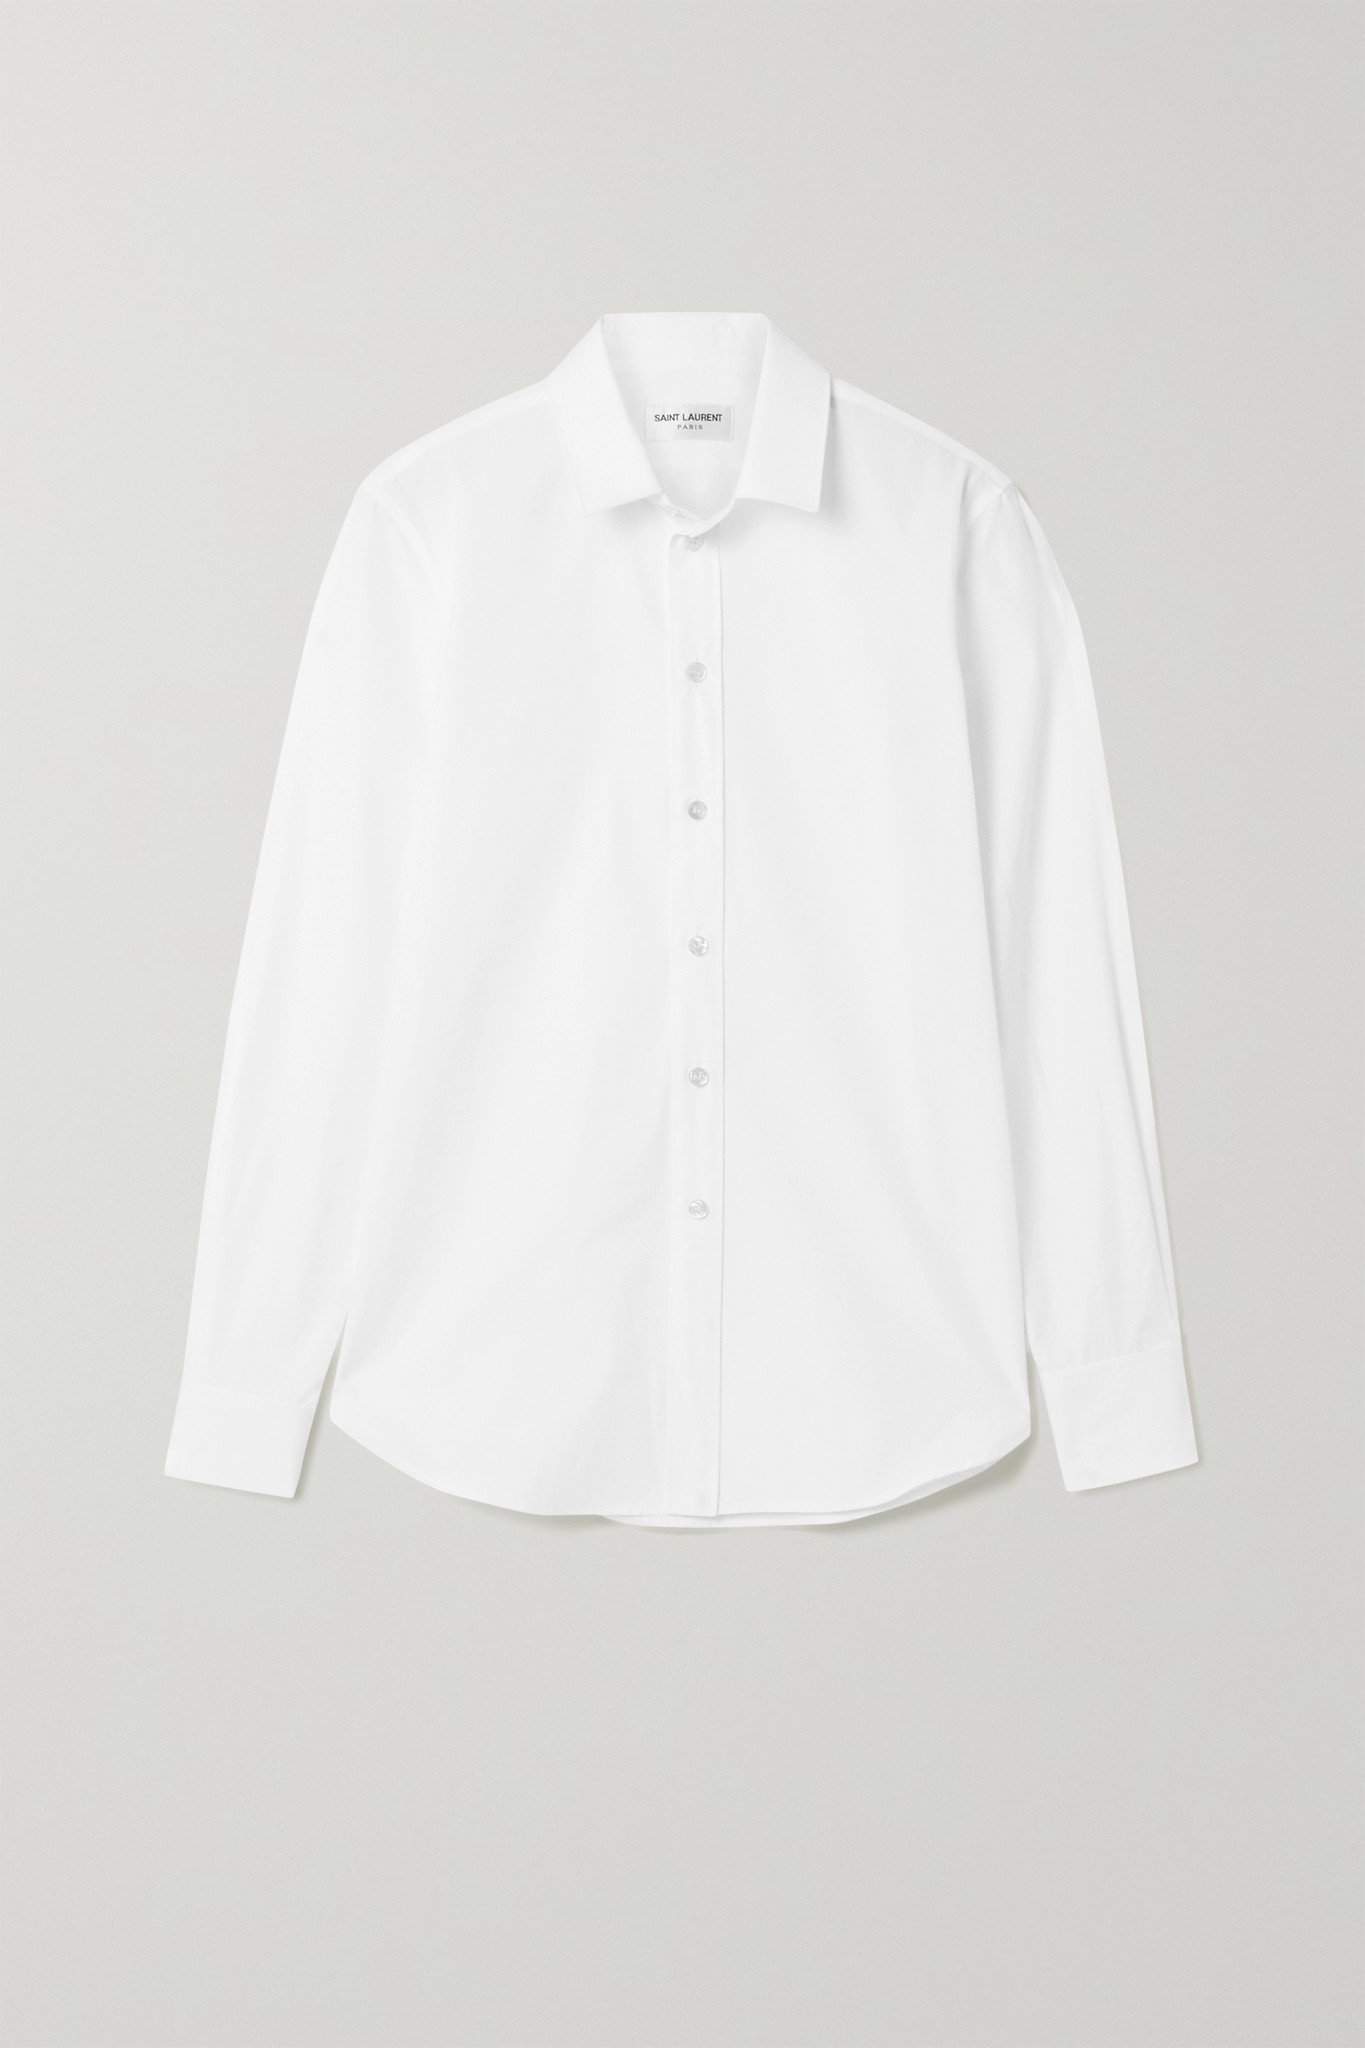 SAINT LAURENT - Cotton-poplin Shirt - White - FR34